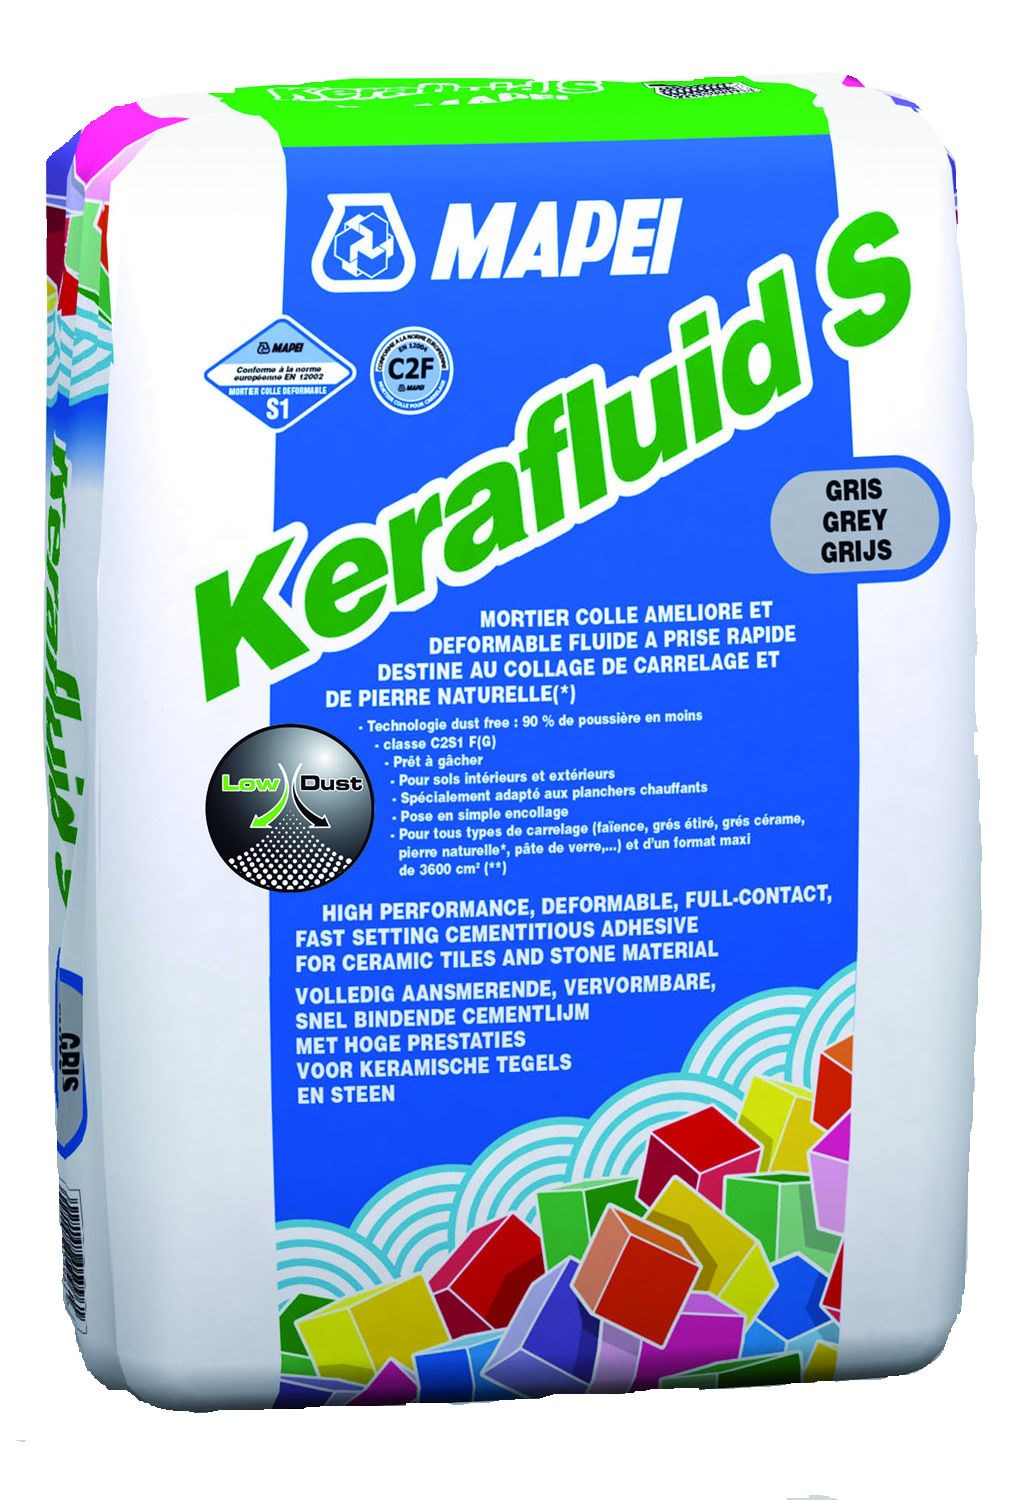 mortier colle dformable pour carrelage c2 kerafluid s mapei